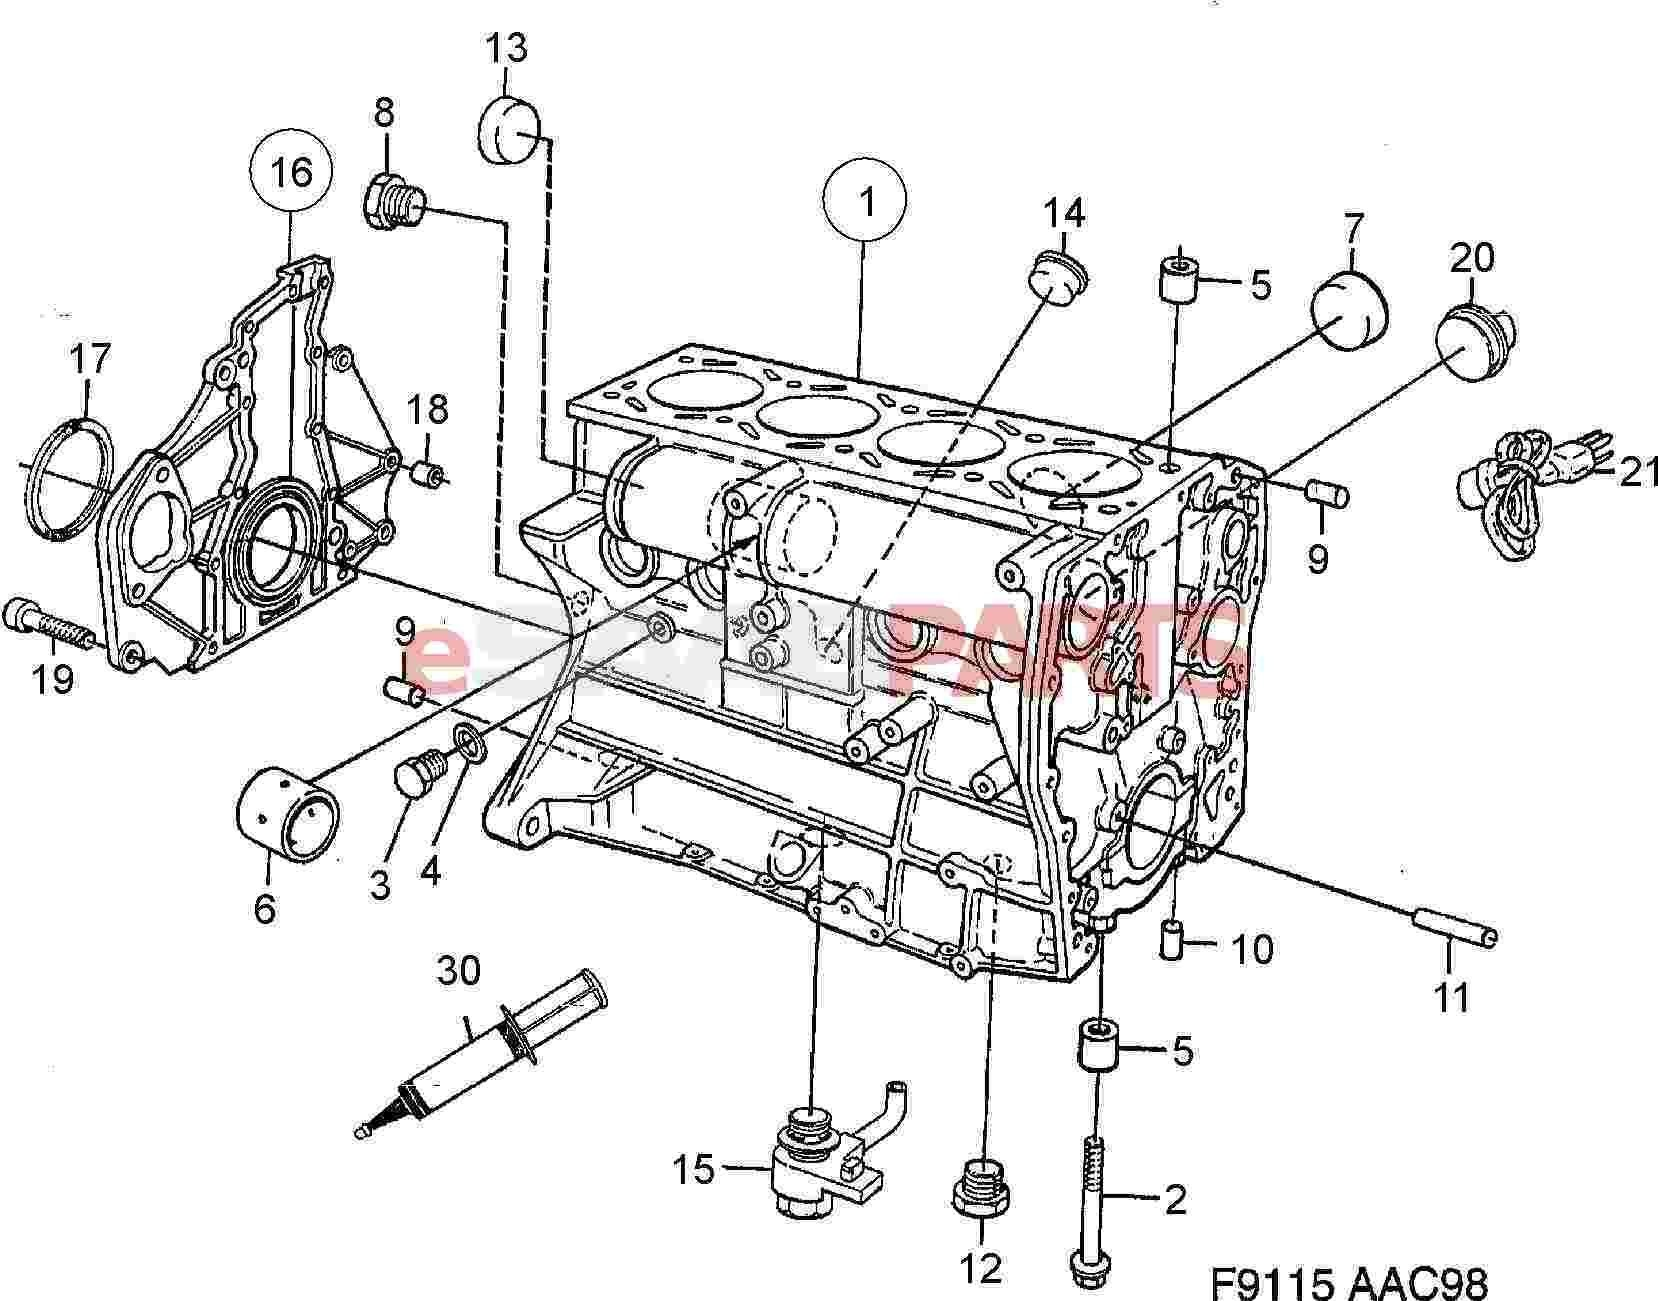 hight resolution of 2000 saab 9 3 fuse box diagram wiring library rh 73 codingcommunity de 2006 saab 9